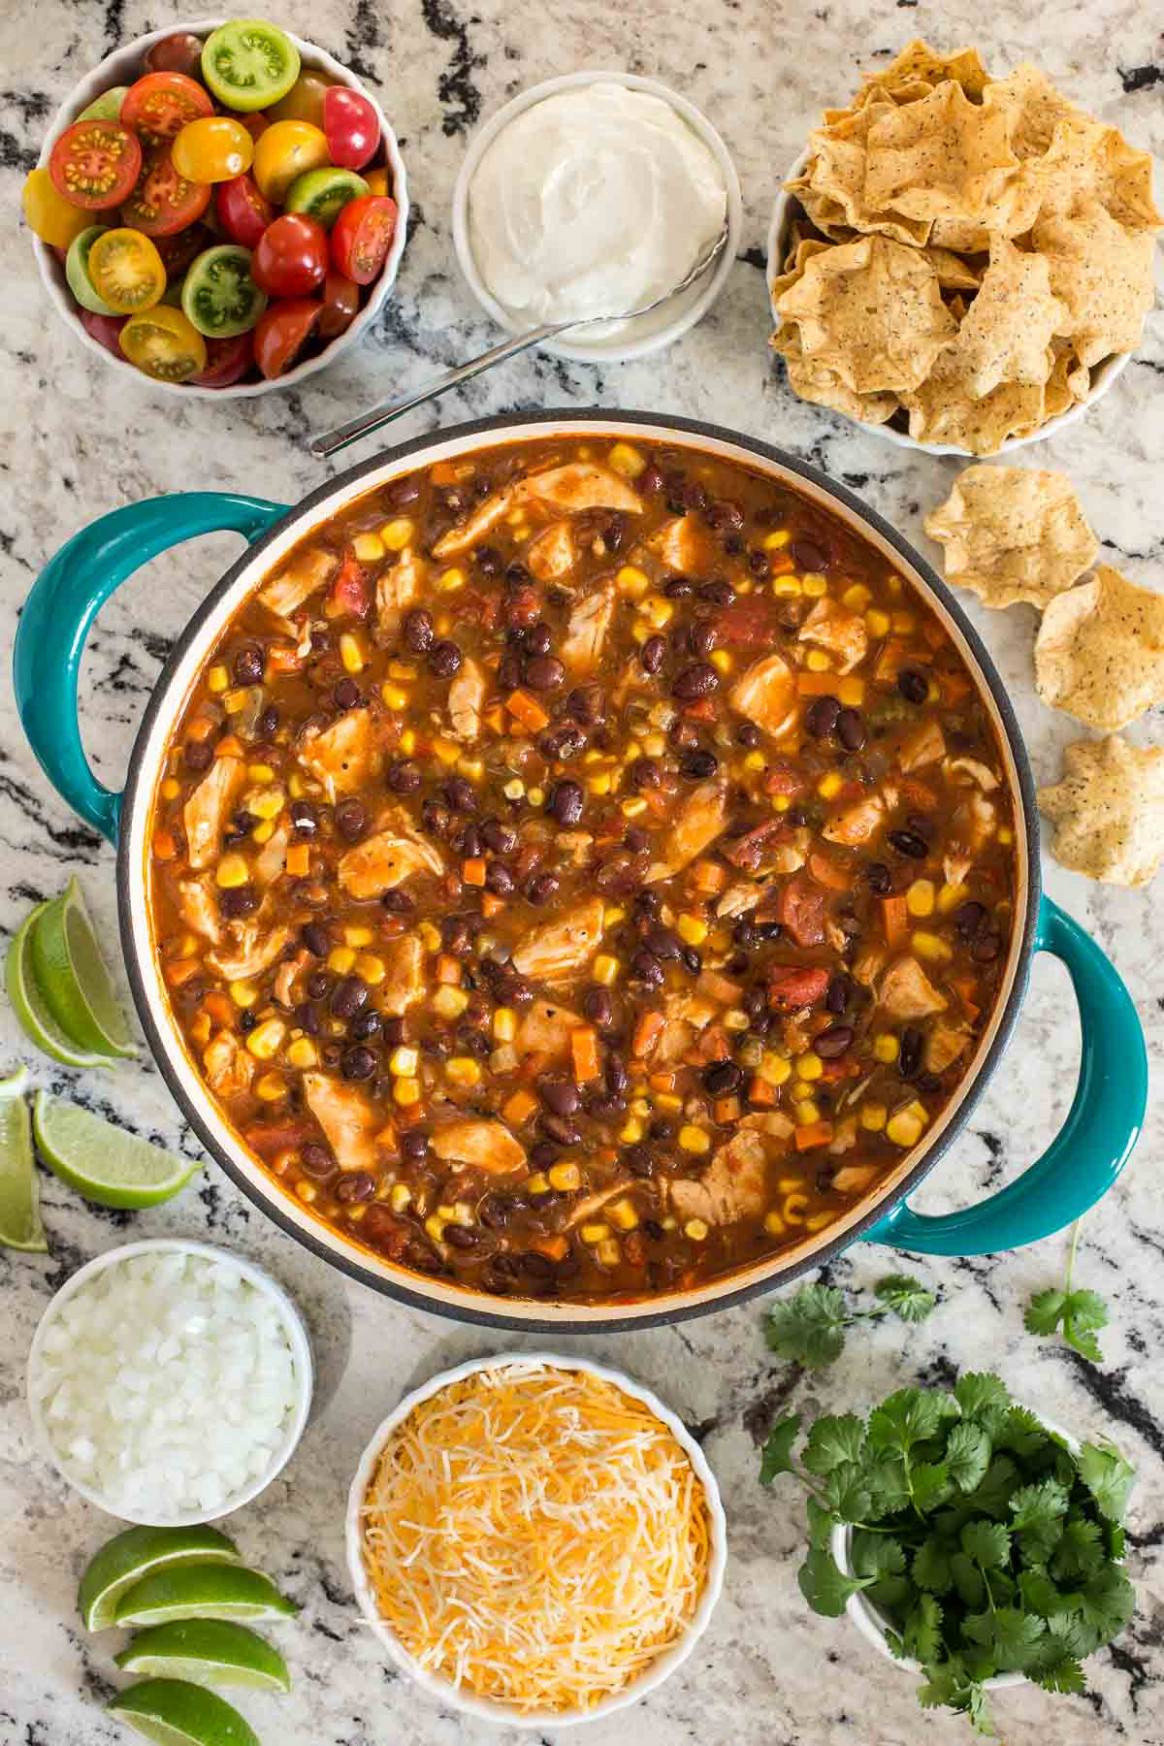 Healthy Chicken Black Bean Chili | The Café Sucre Farine - Healthy Recipes Rotisserie Chicken